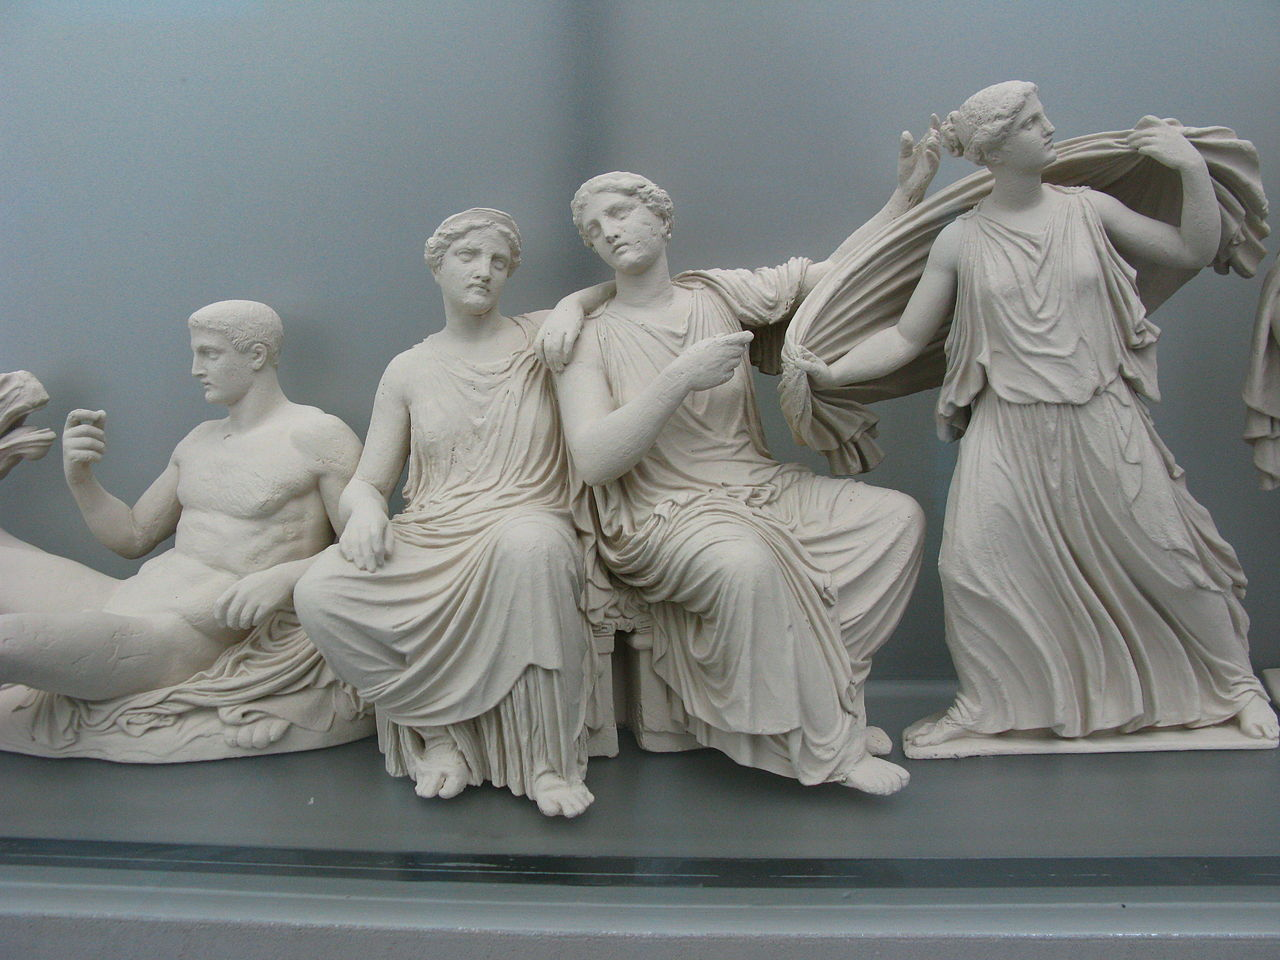 1280px-Reconstruction of the east pediment of the Parthenon 3